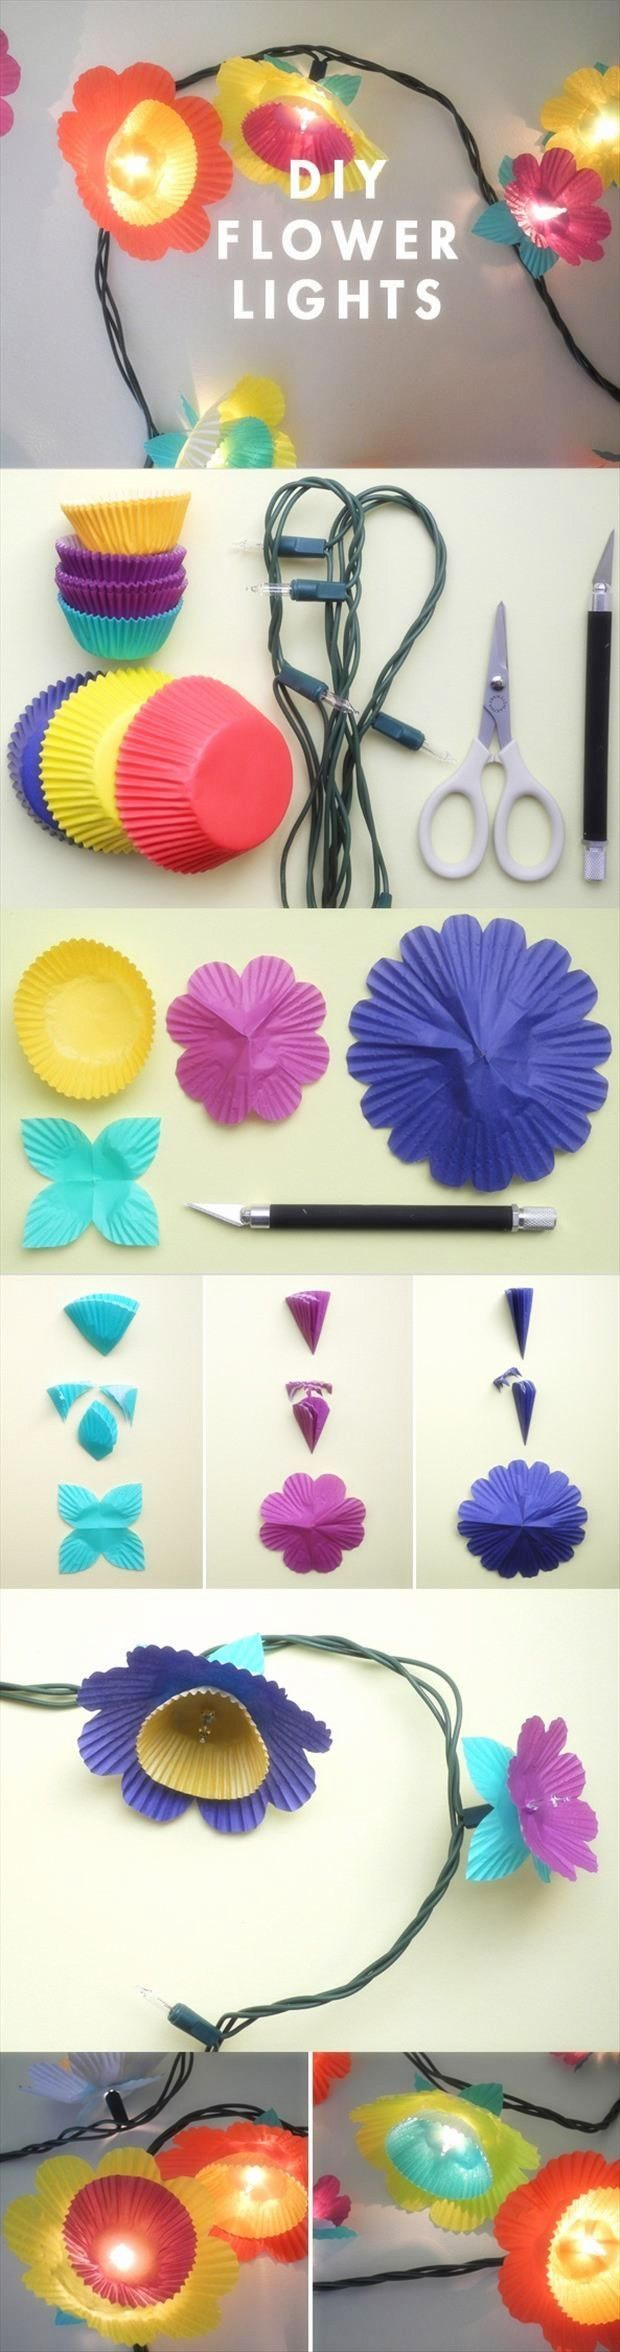 Girls Garden Theme Bedroom- Ideas and tutorials, including these DIY flower lights by 'Oh Happy Day'!